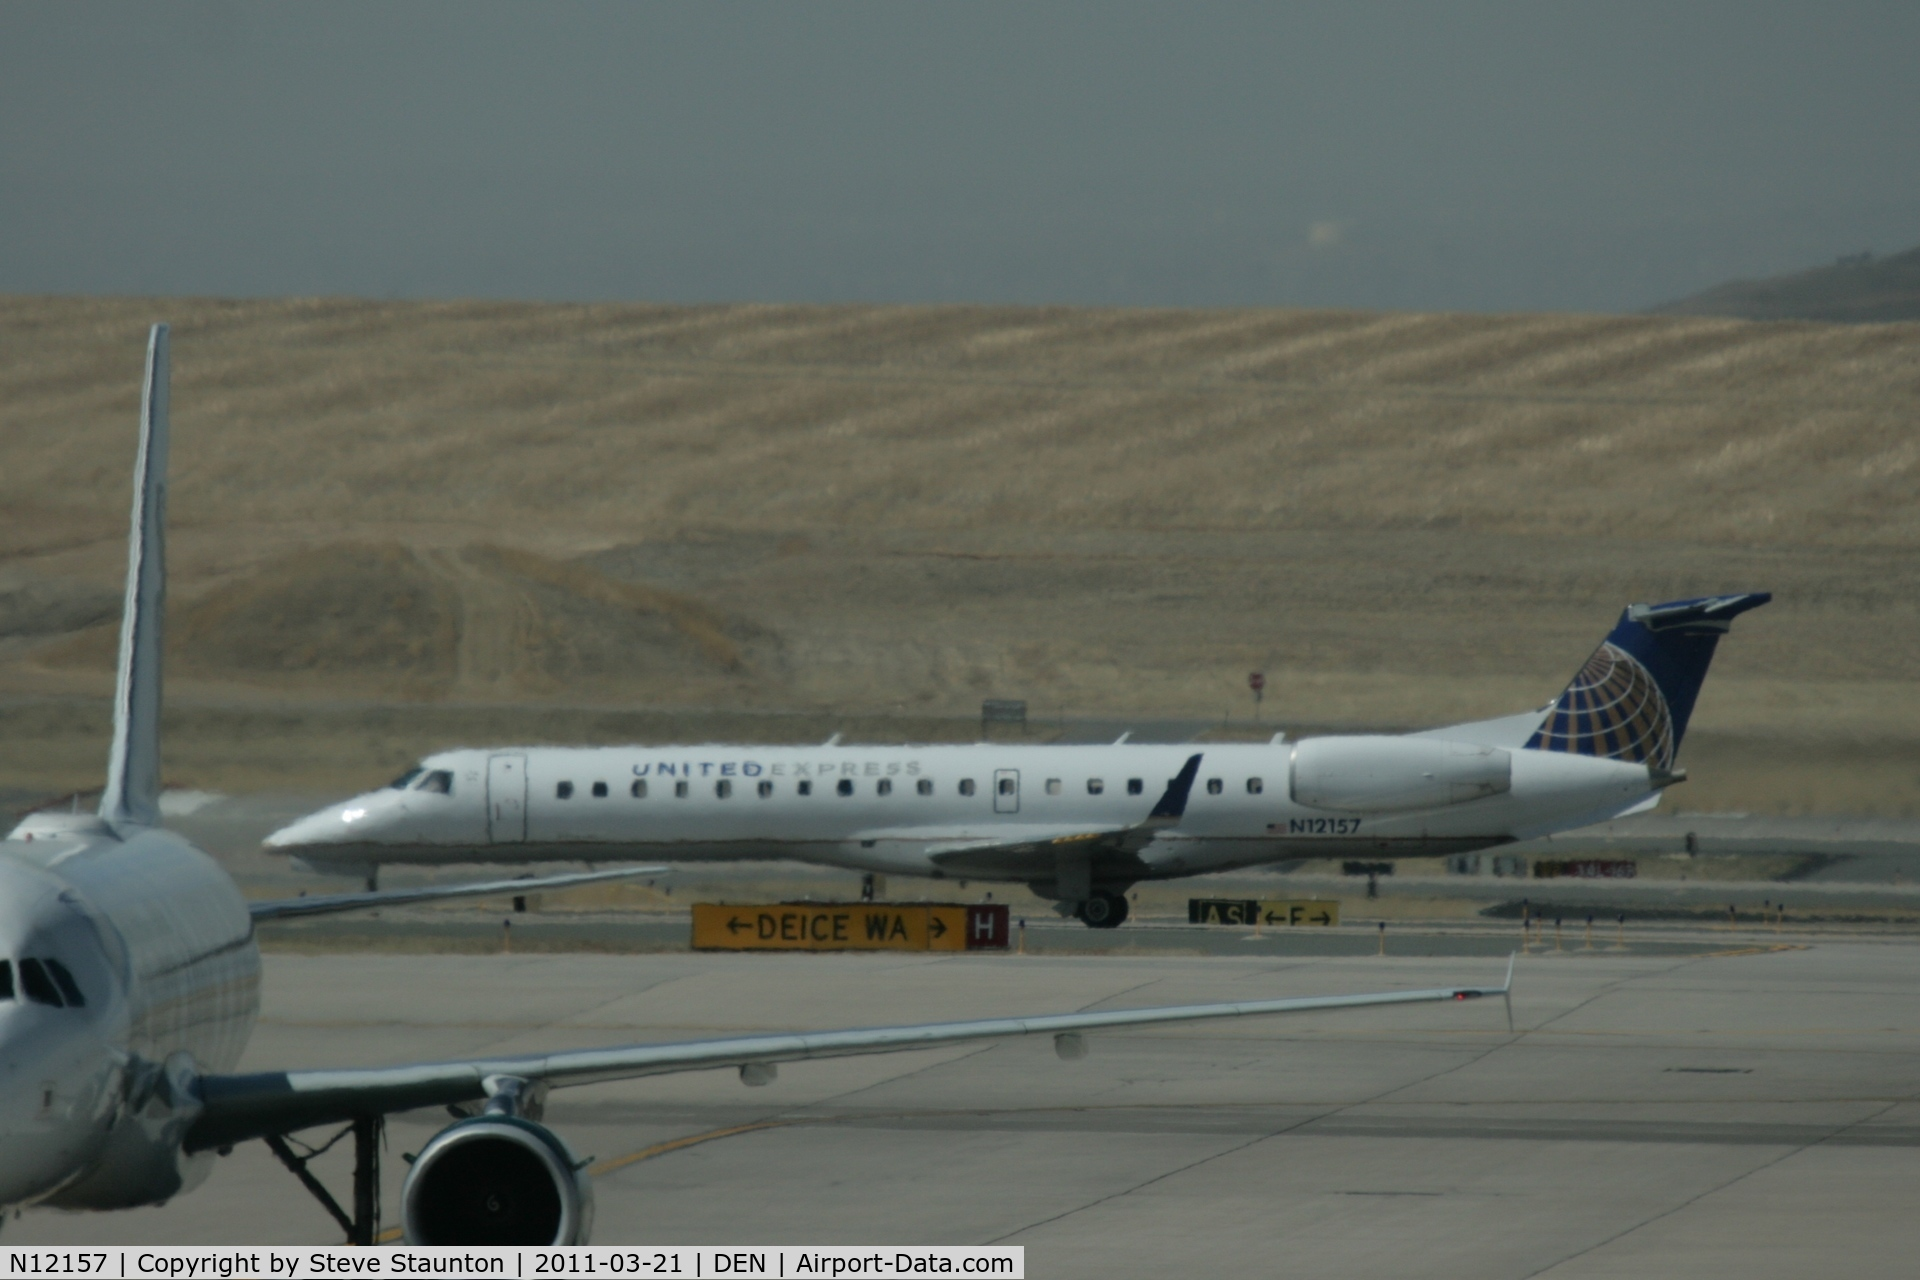 N12157, 2004 Embraer EMB-145XR C/N 145787, Taken at Denver International Airport, in March 2011 whilst on an Aeroprint Aviation tour